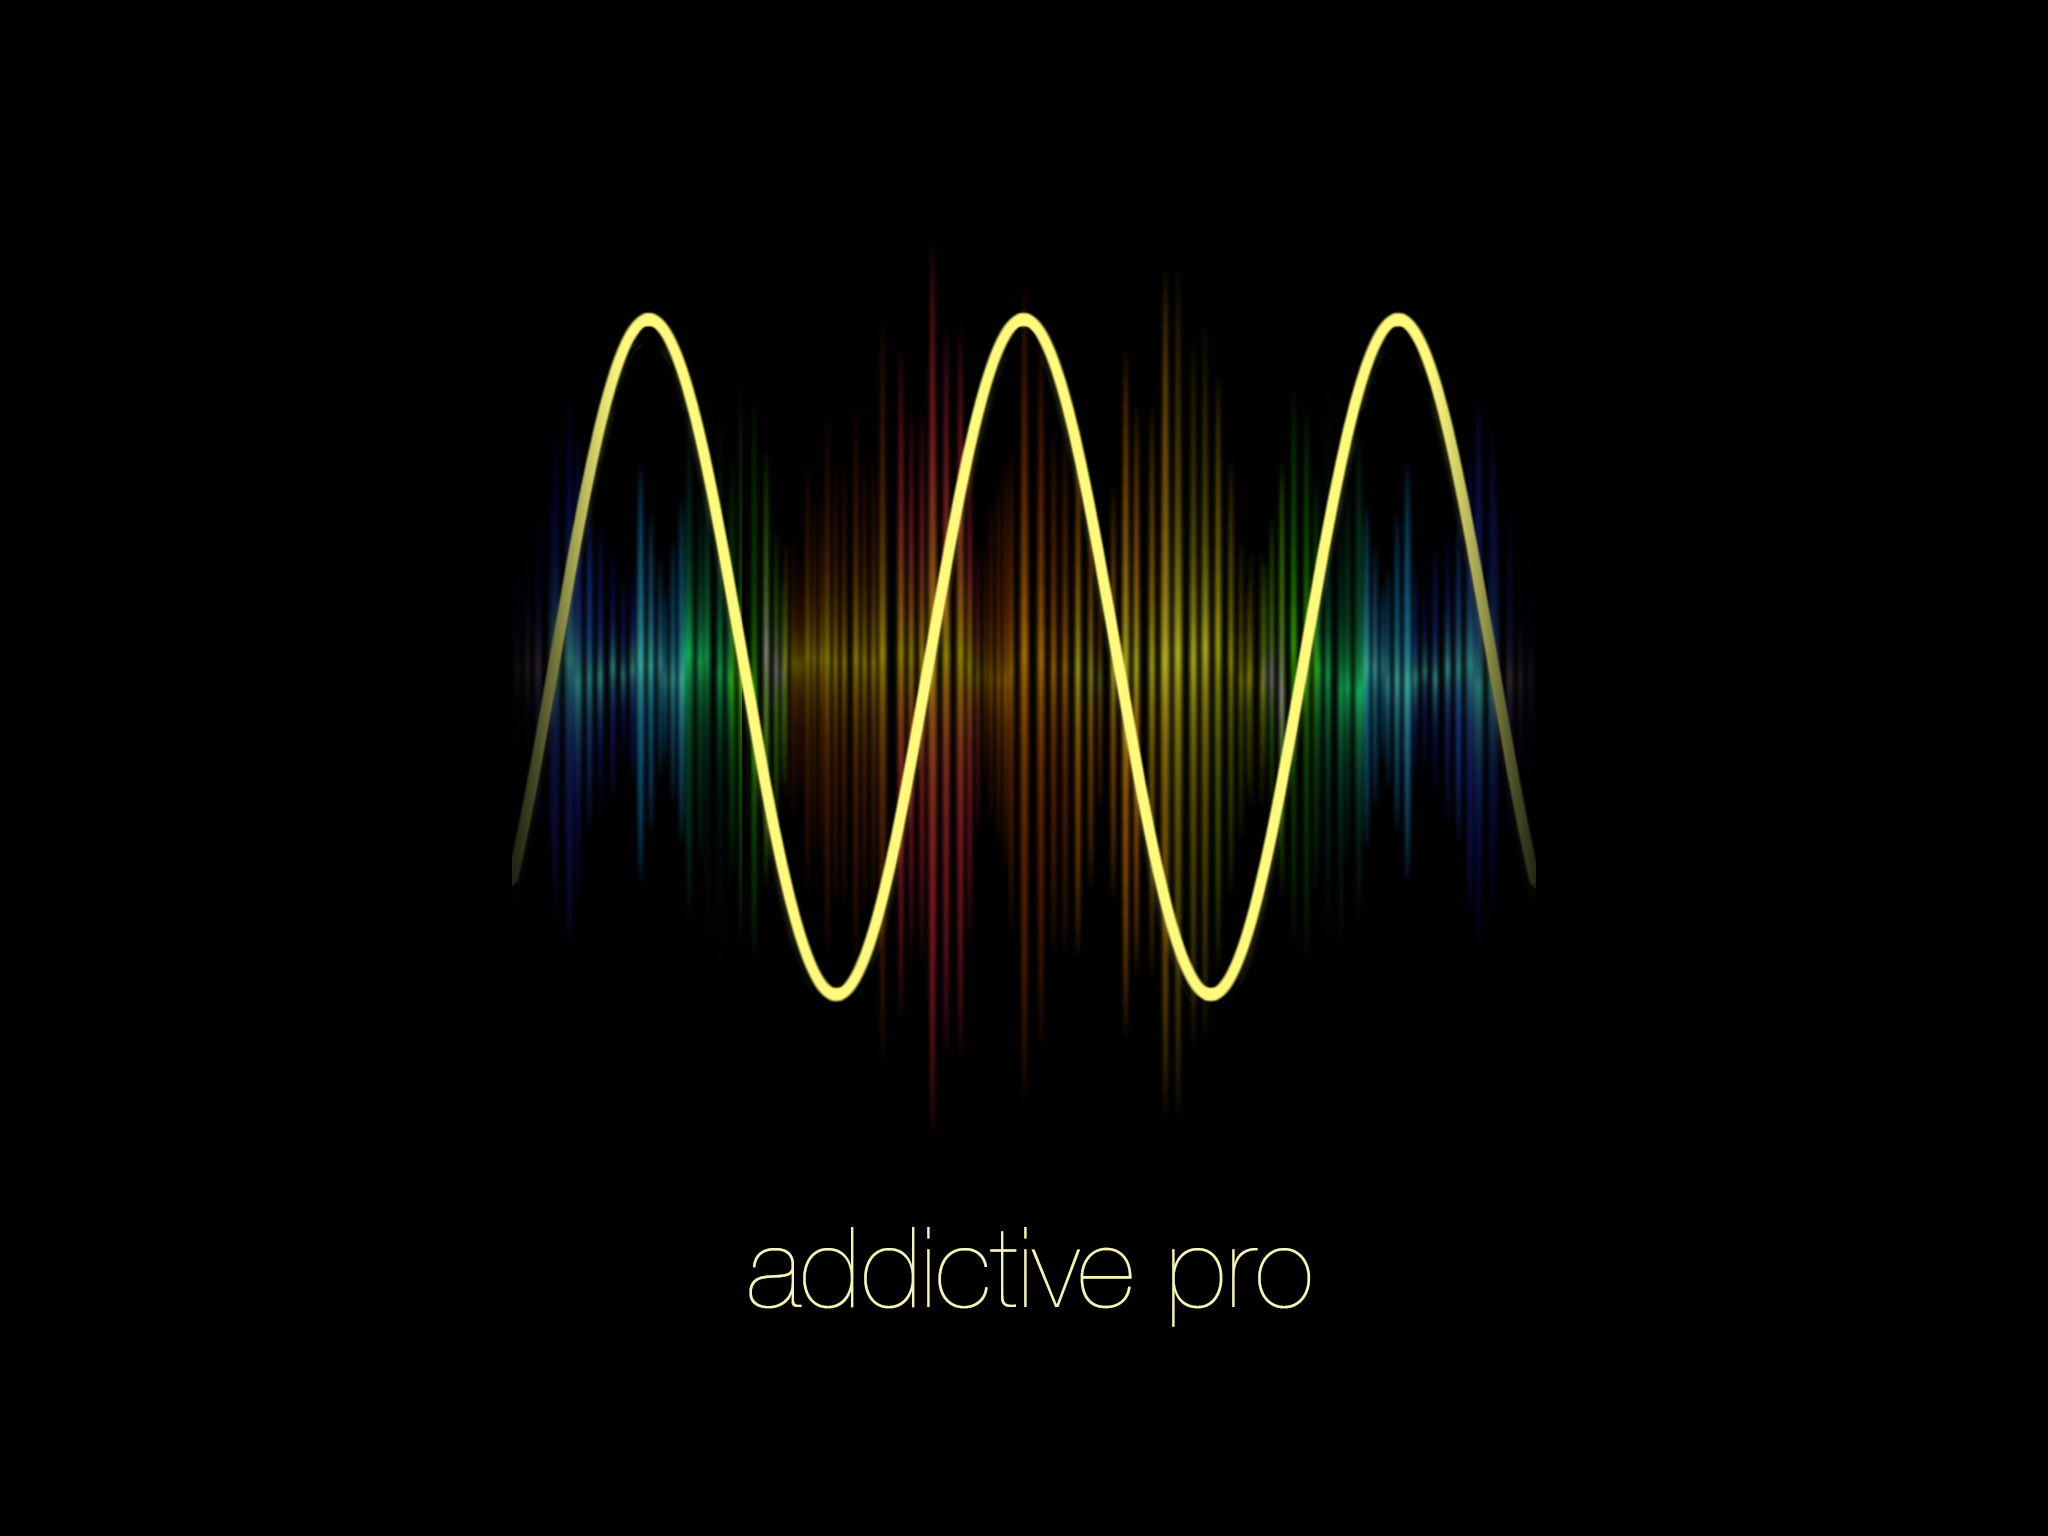 Addictive Pro – Synth of the year?